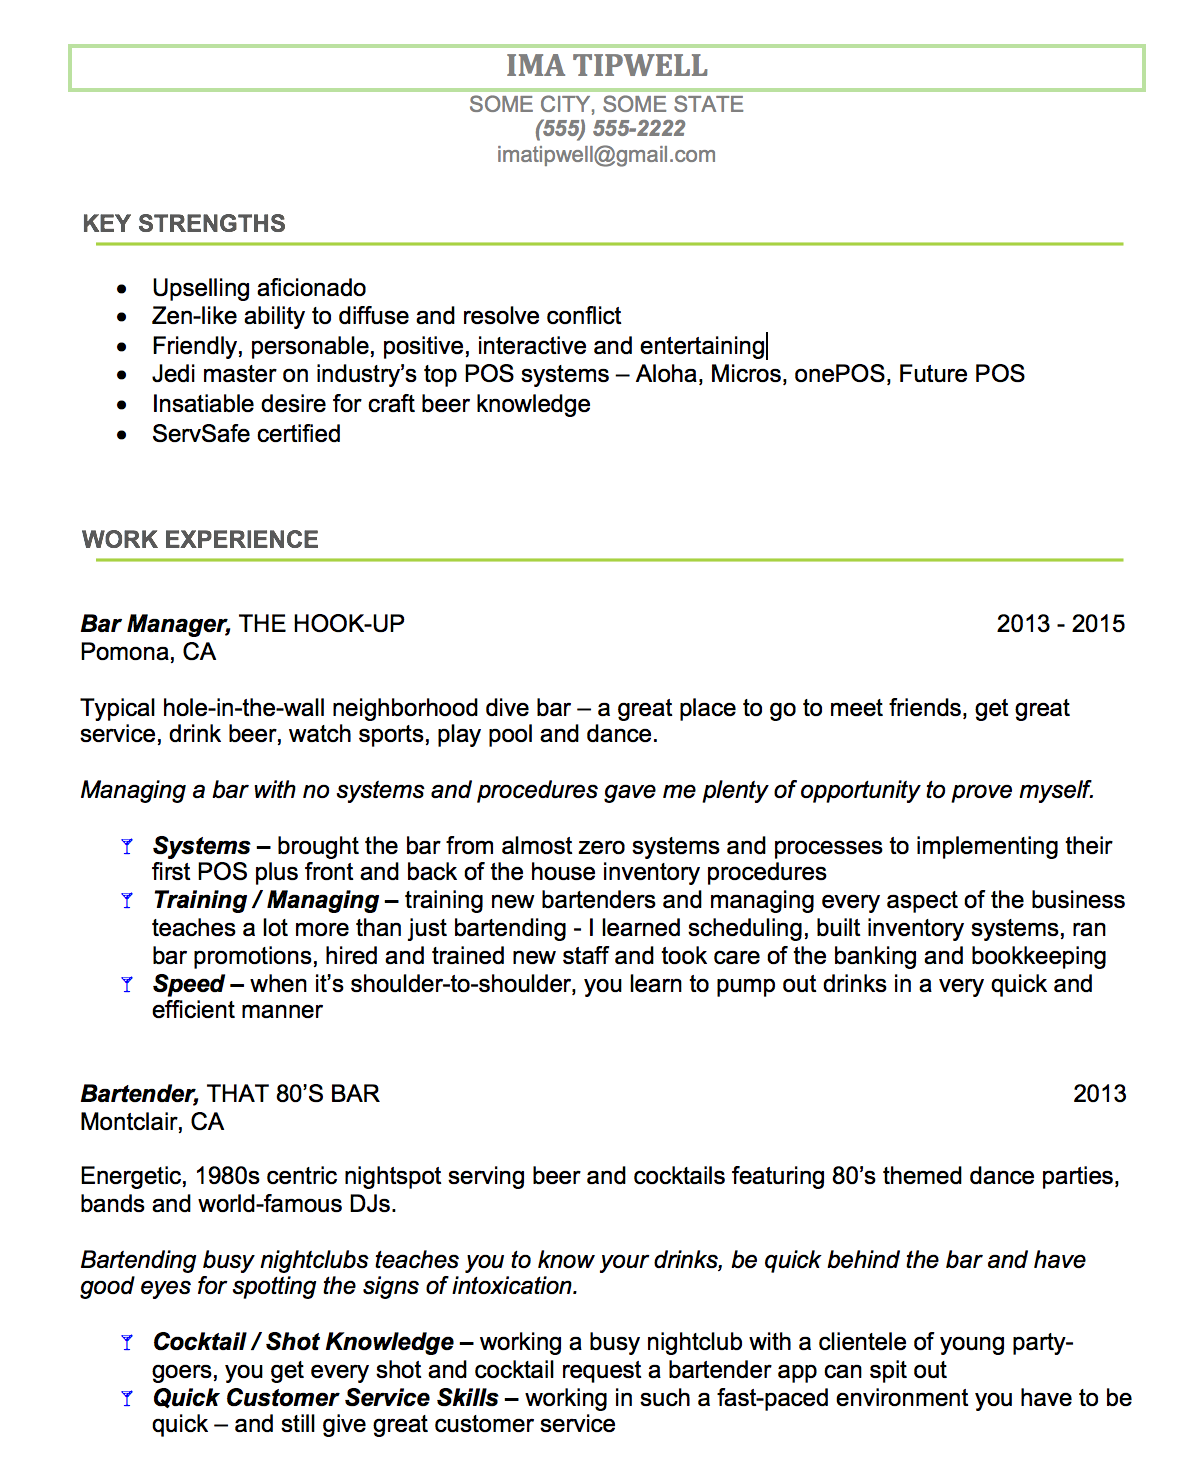 bartending resume example 2 with industry experience - Bartending Resume Samples